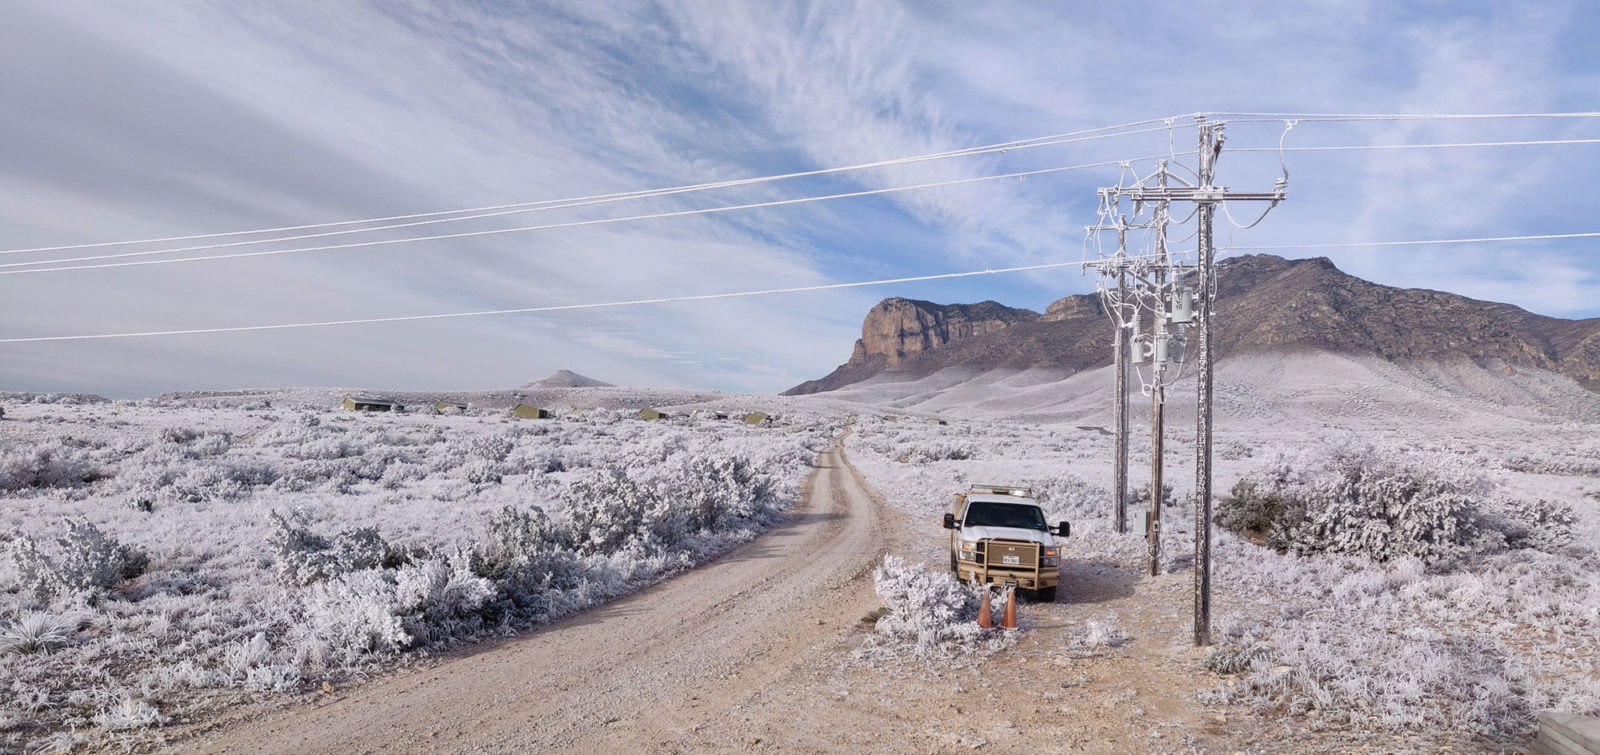 bucket truck near power line with mountains in the distance